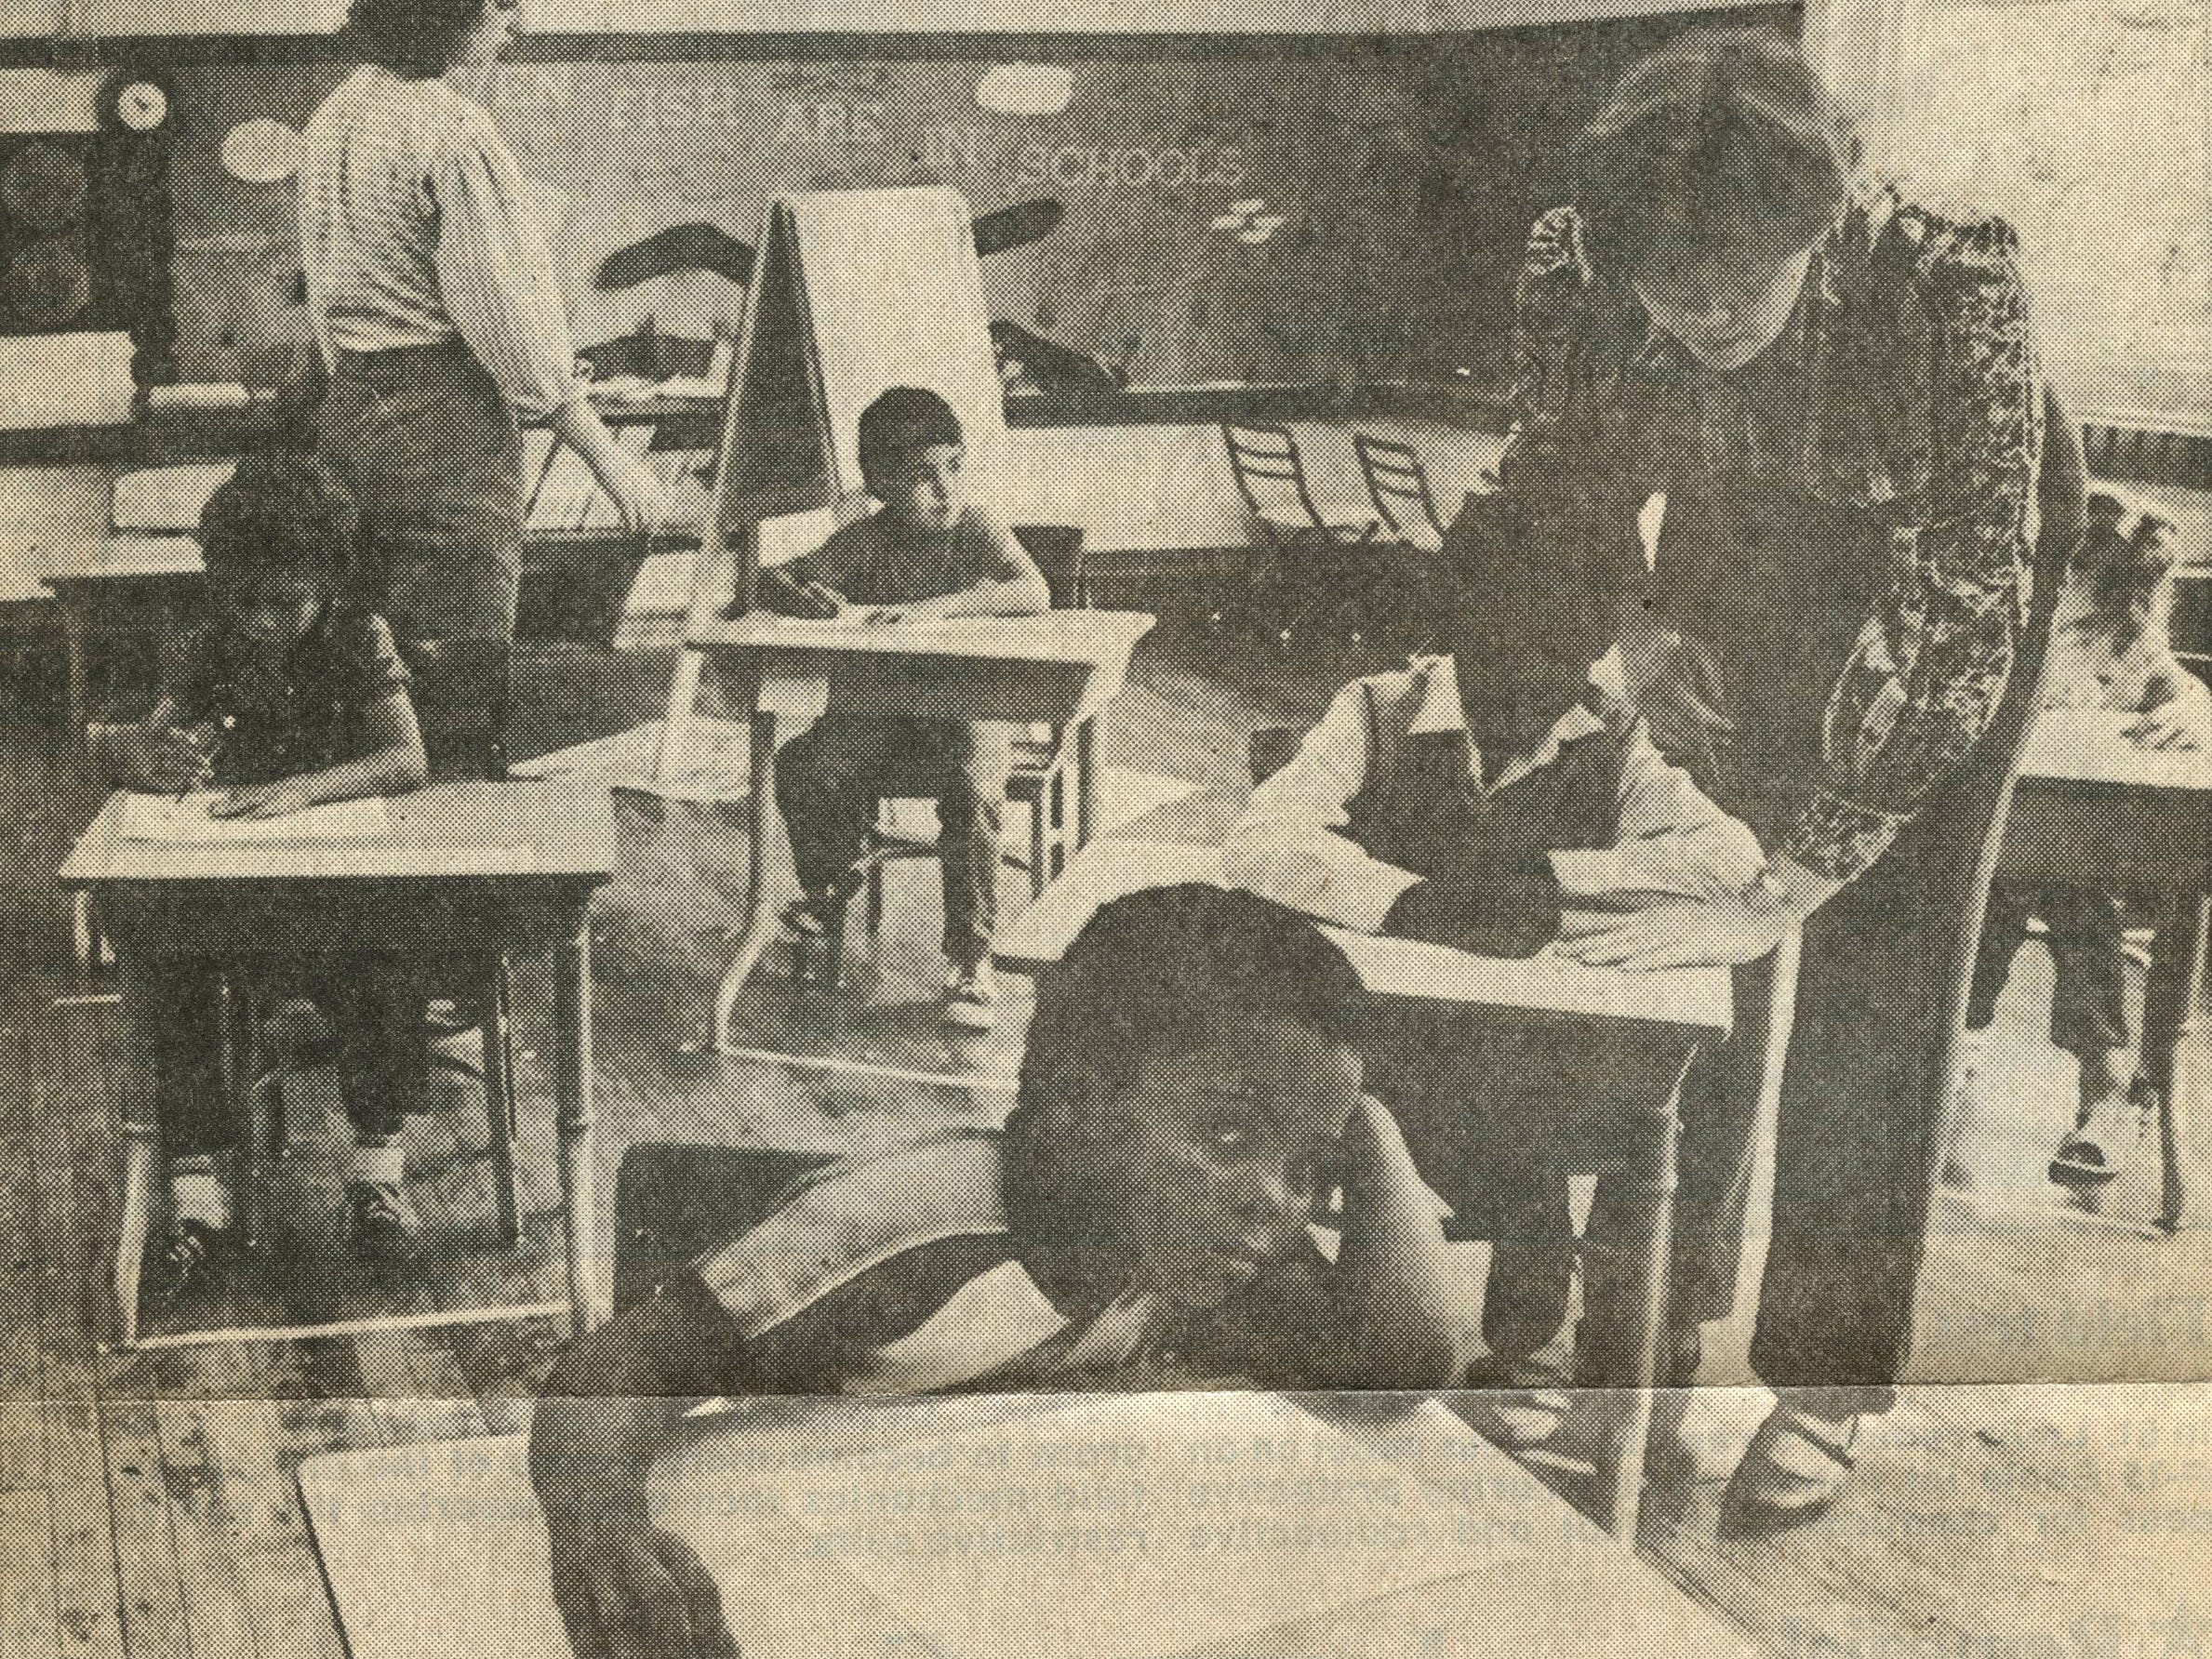 Lori Phipps, left, and Janet Carpenter team up at Boyd Elementary School to teach first- and second-grade students in an experimental remediation class in 1986.